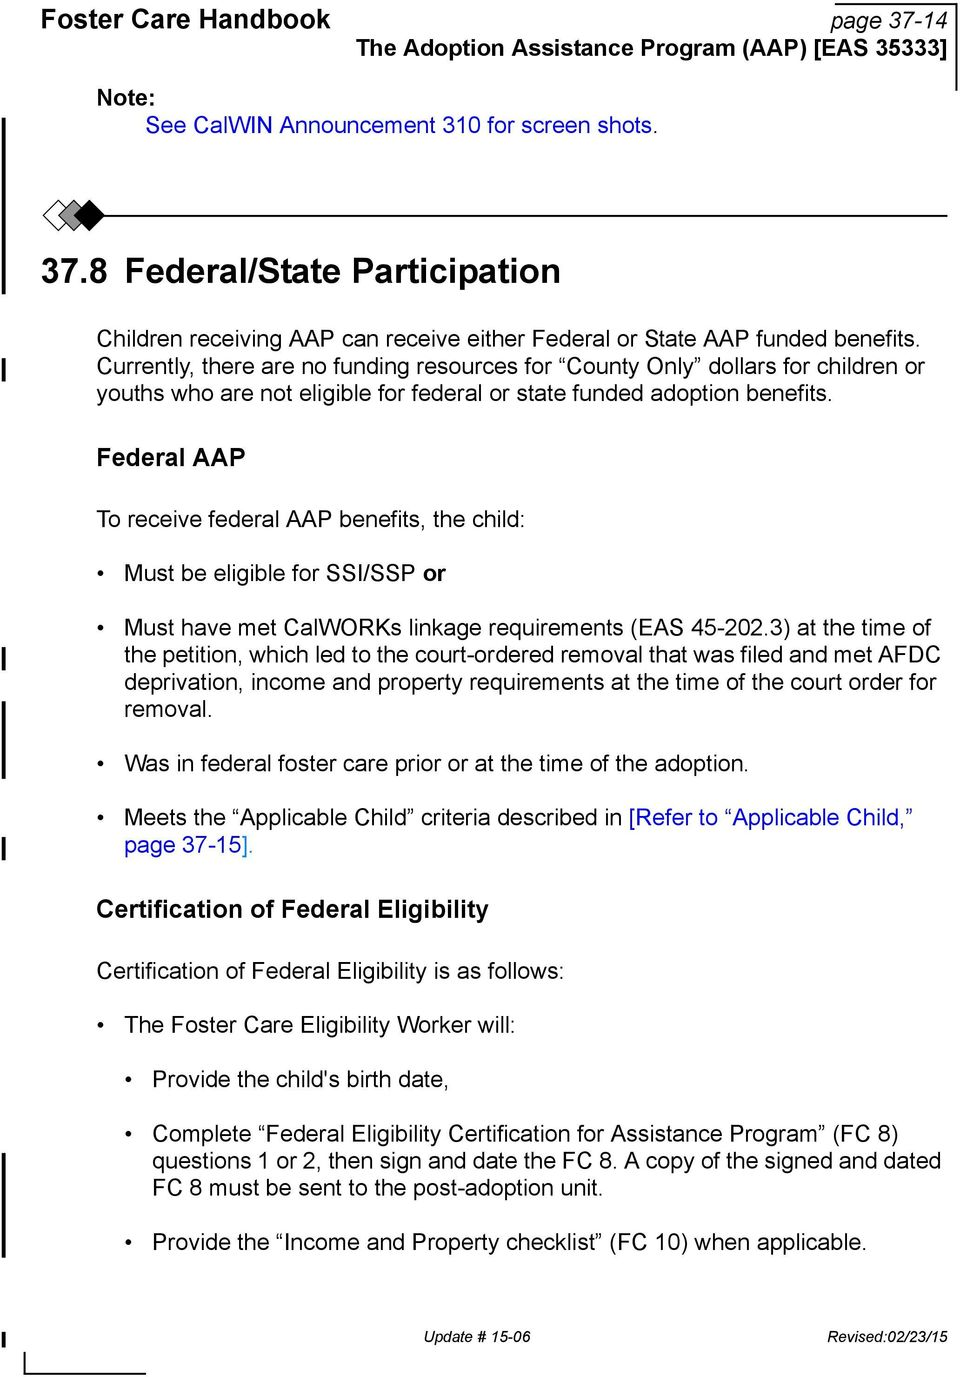 37 The Adoption Assistance Program Aap Pdf